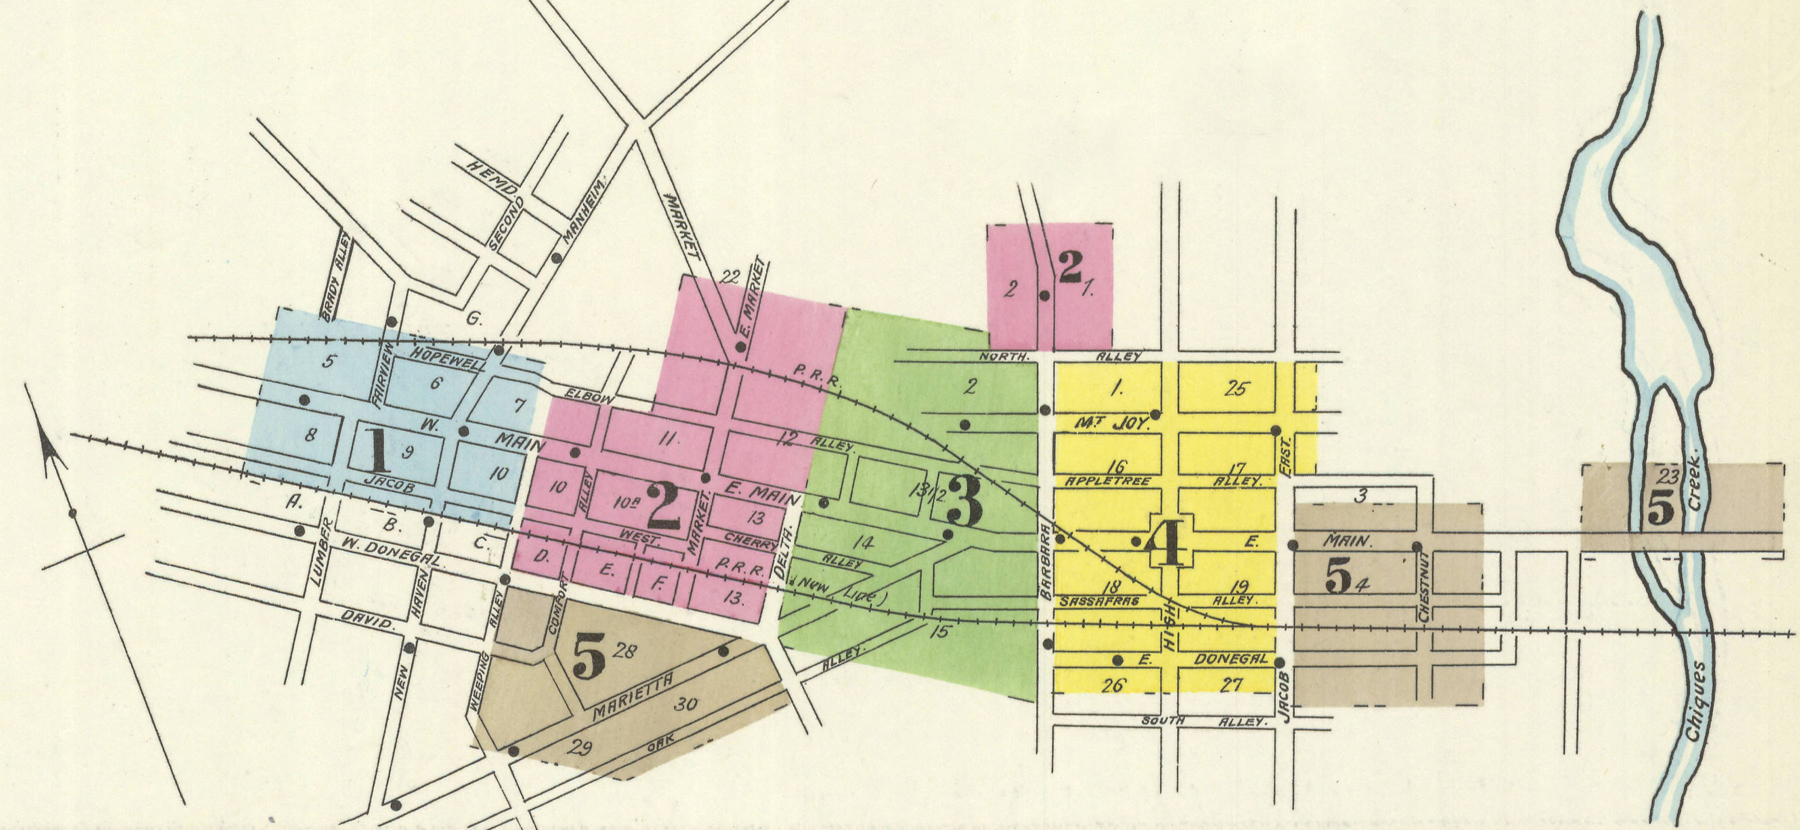 1896 Sanborn Fire Insurance Map shows completion of the new line with the old alignment yet to be abandoned.  Map collection of the Penn State University Library.